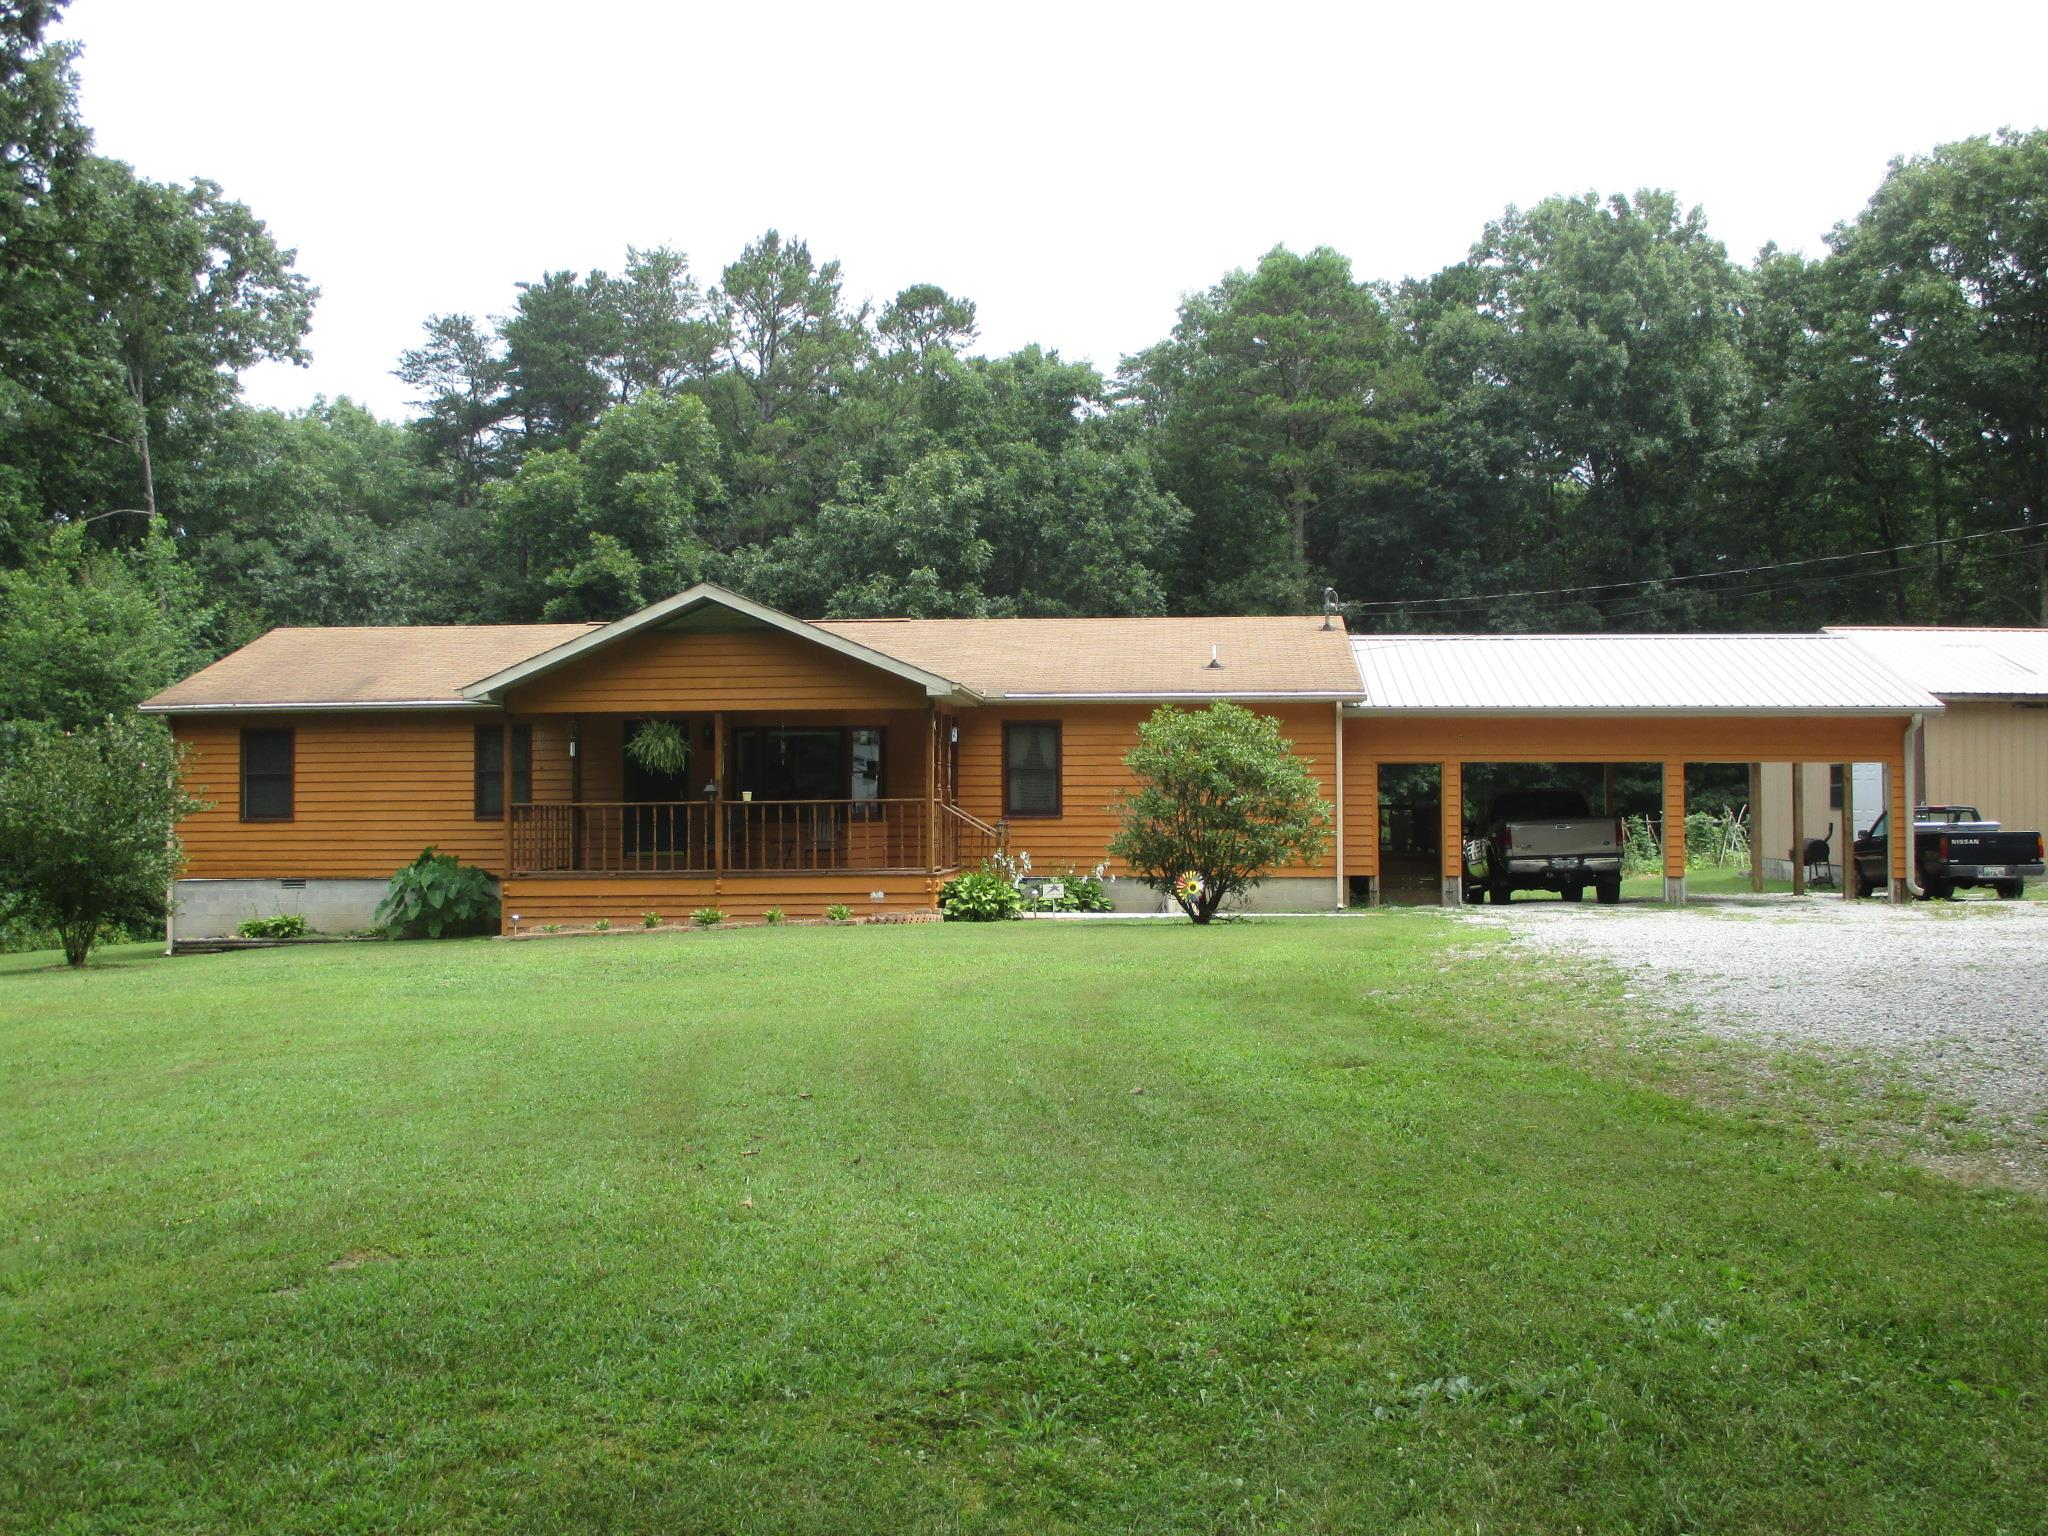 Photo of 67 Pine Ln  Altamont  TN